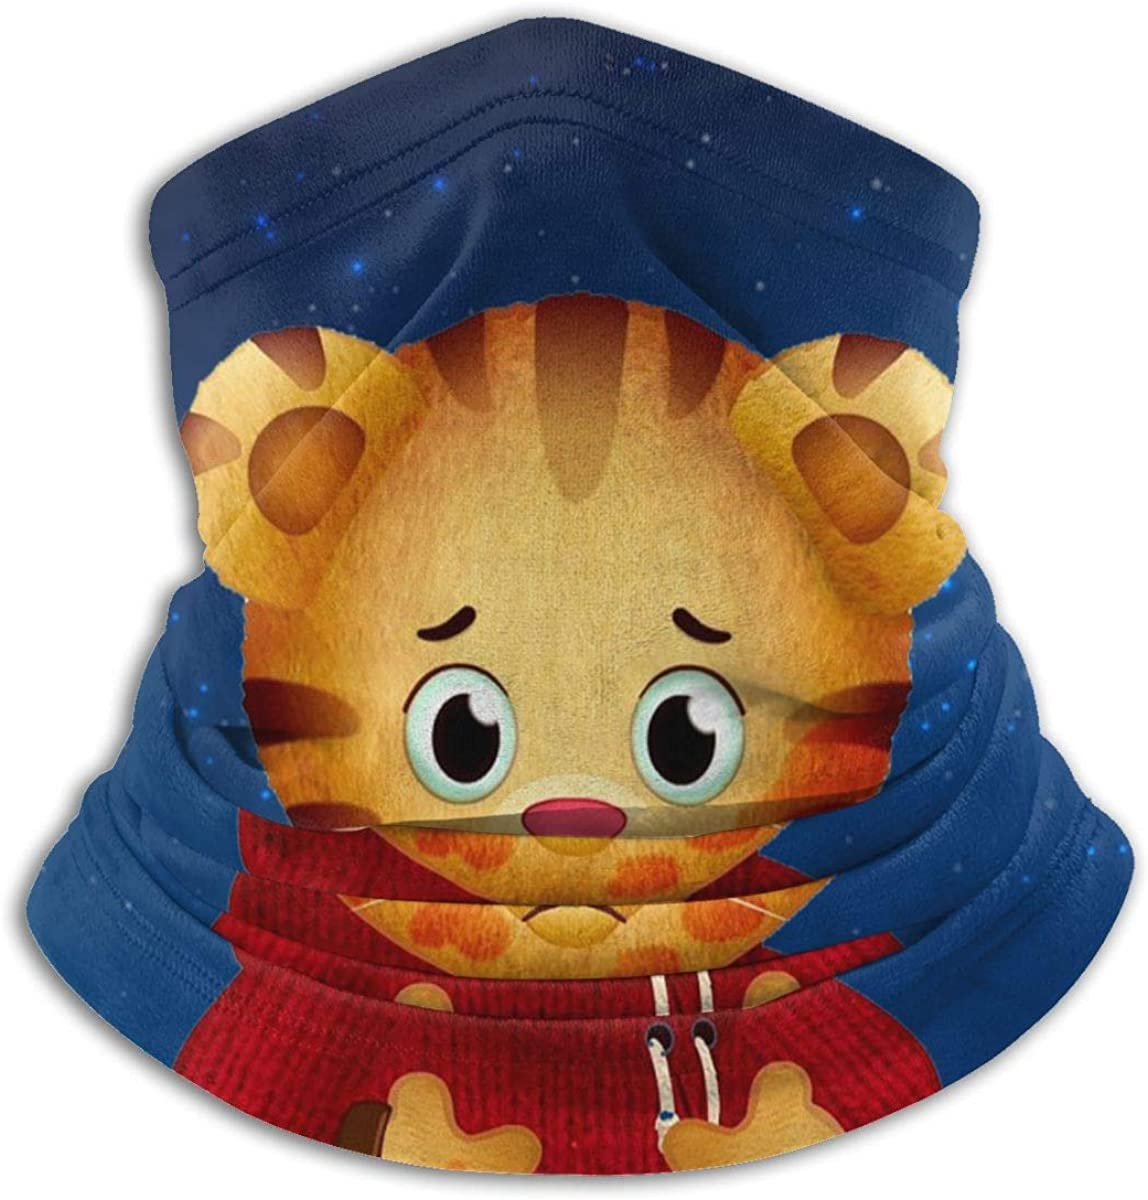 Daniel Tiger Unisex Comfortable And Breathable Fashion Scarf Face Tube Neck Scarf Neck Warm Scarf